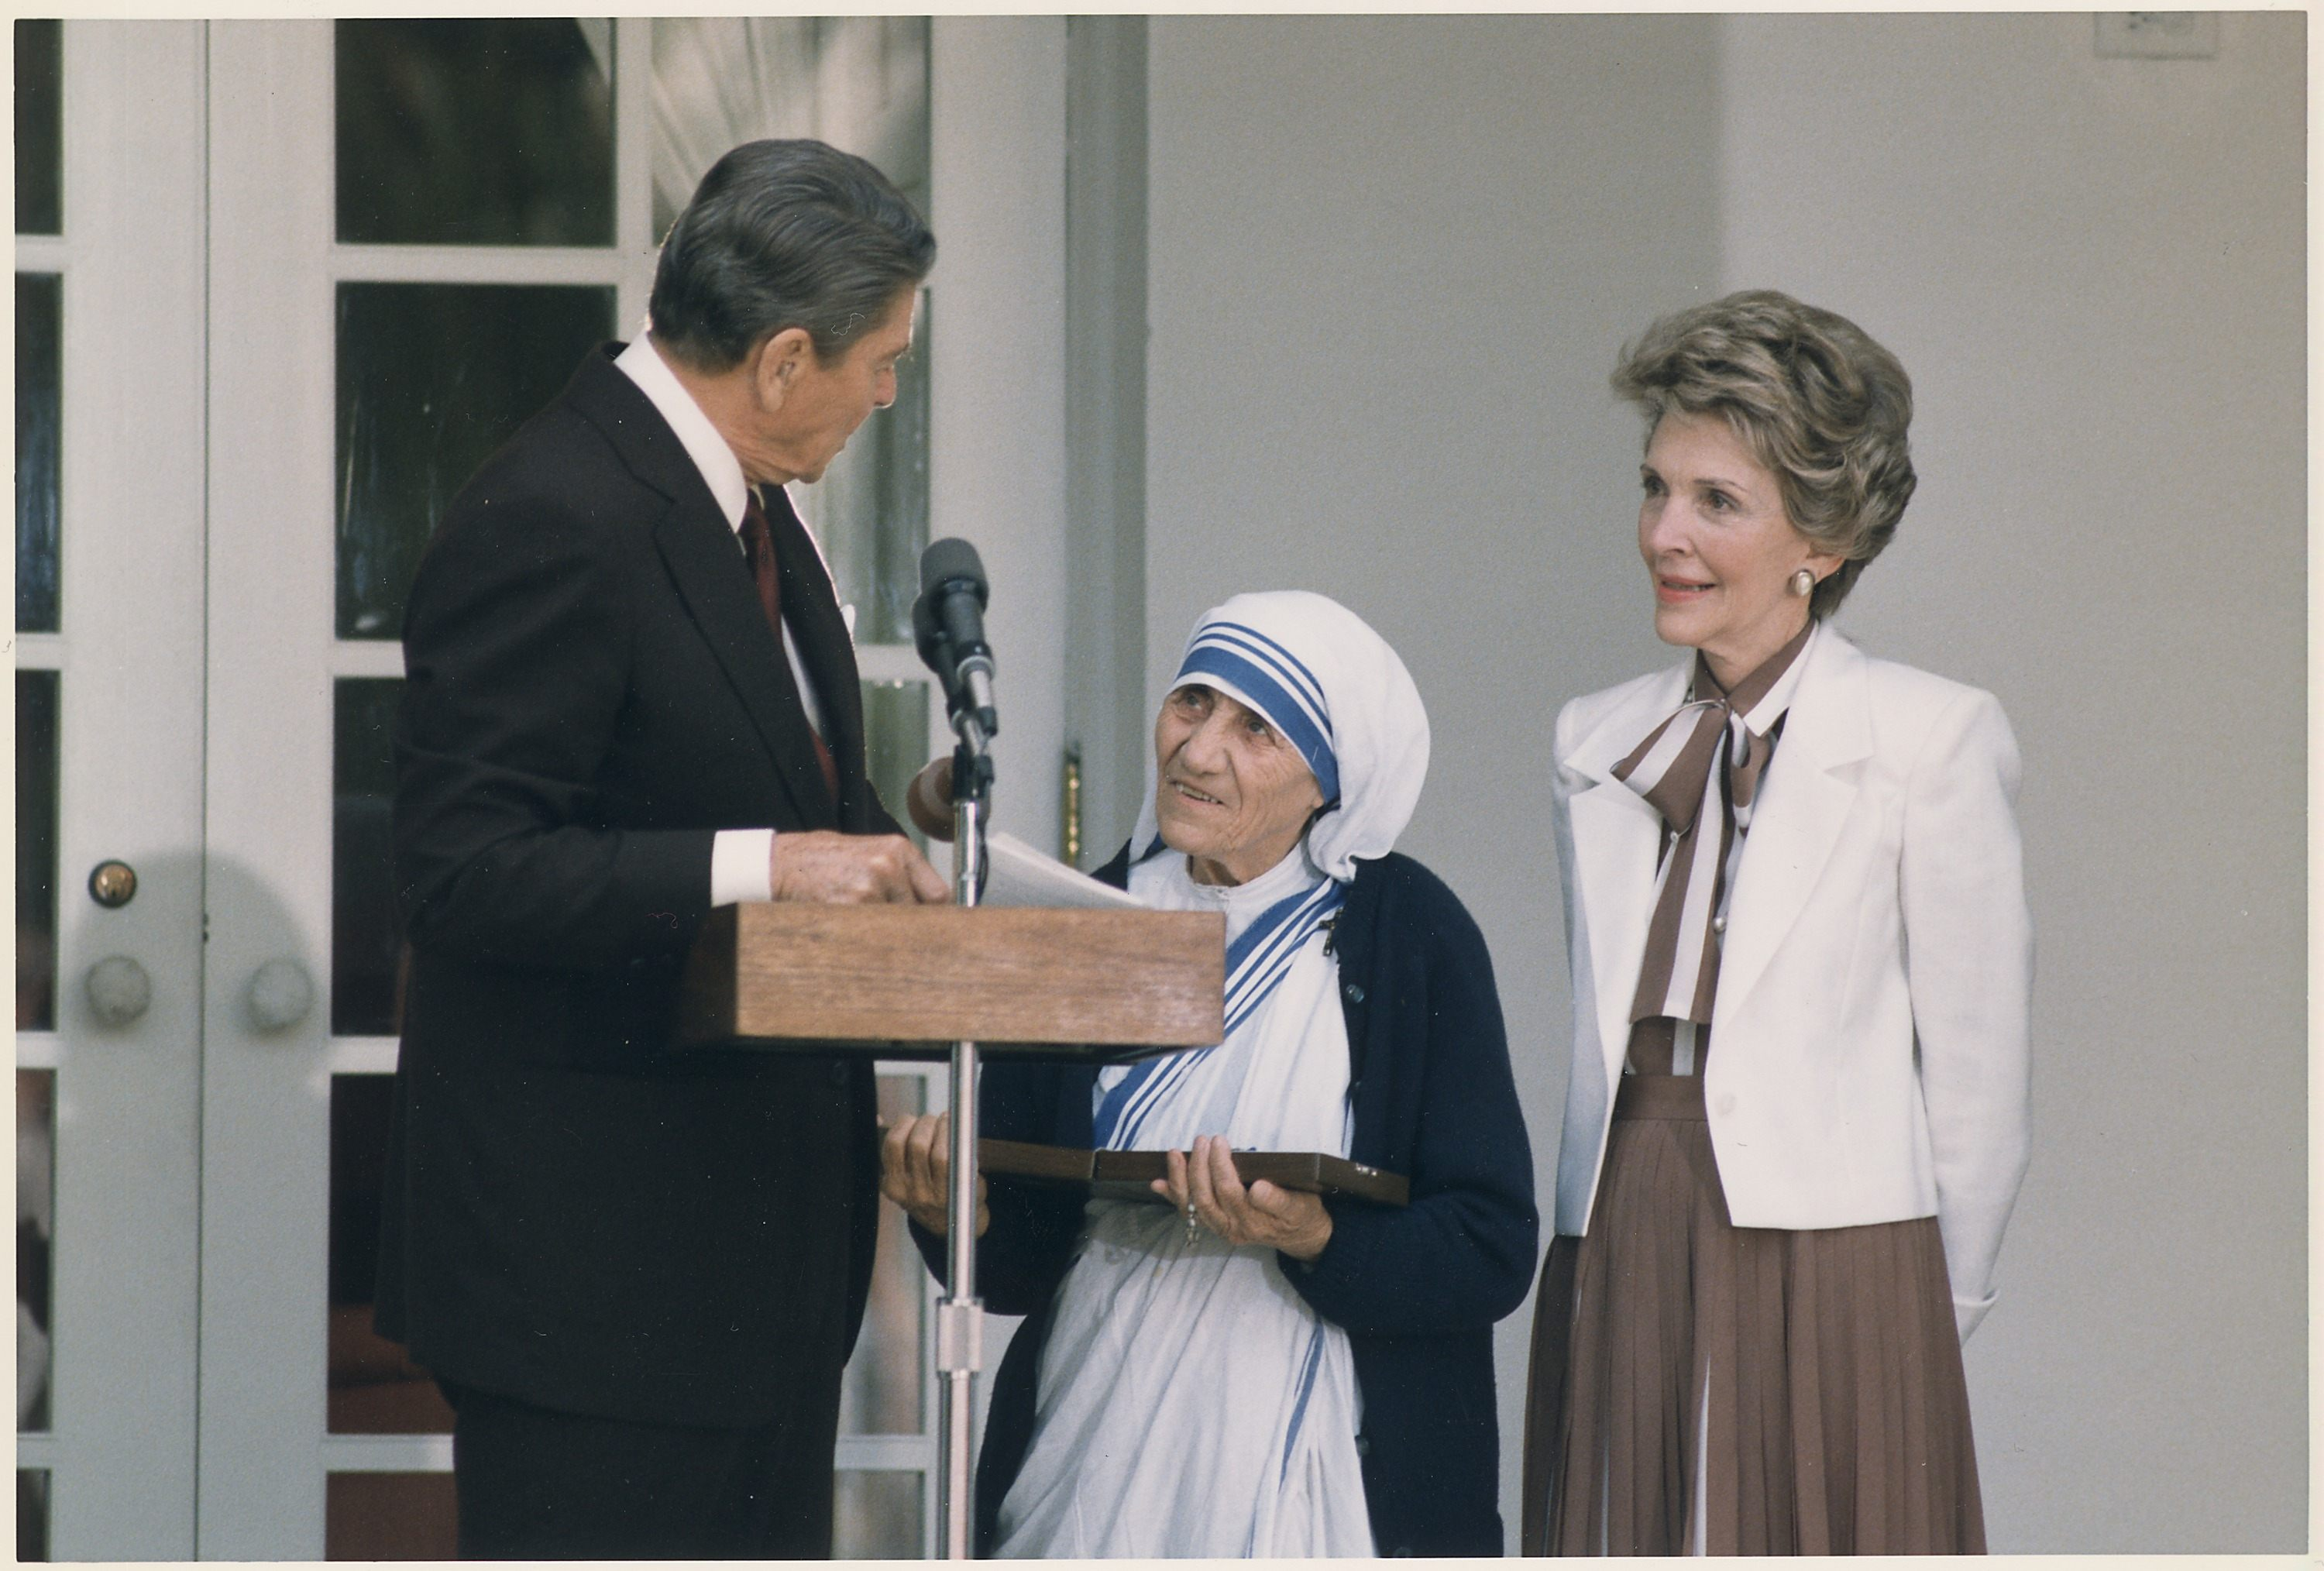 Photograph_of_The_Reagans_presenting_Mother_Teresa_with_the_Medal_of_Freedom_at_a_White_House_Ceremony_-_NARA_-_198564